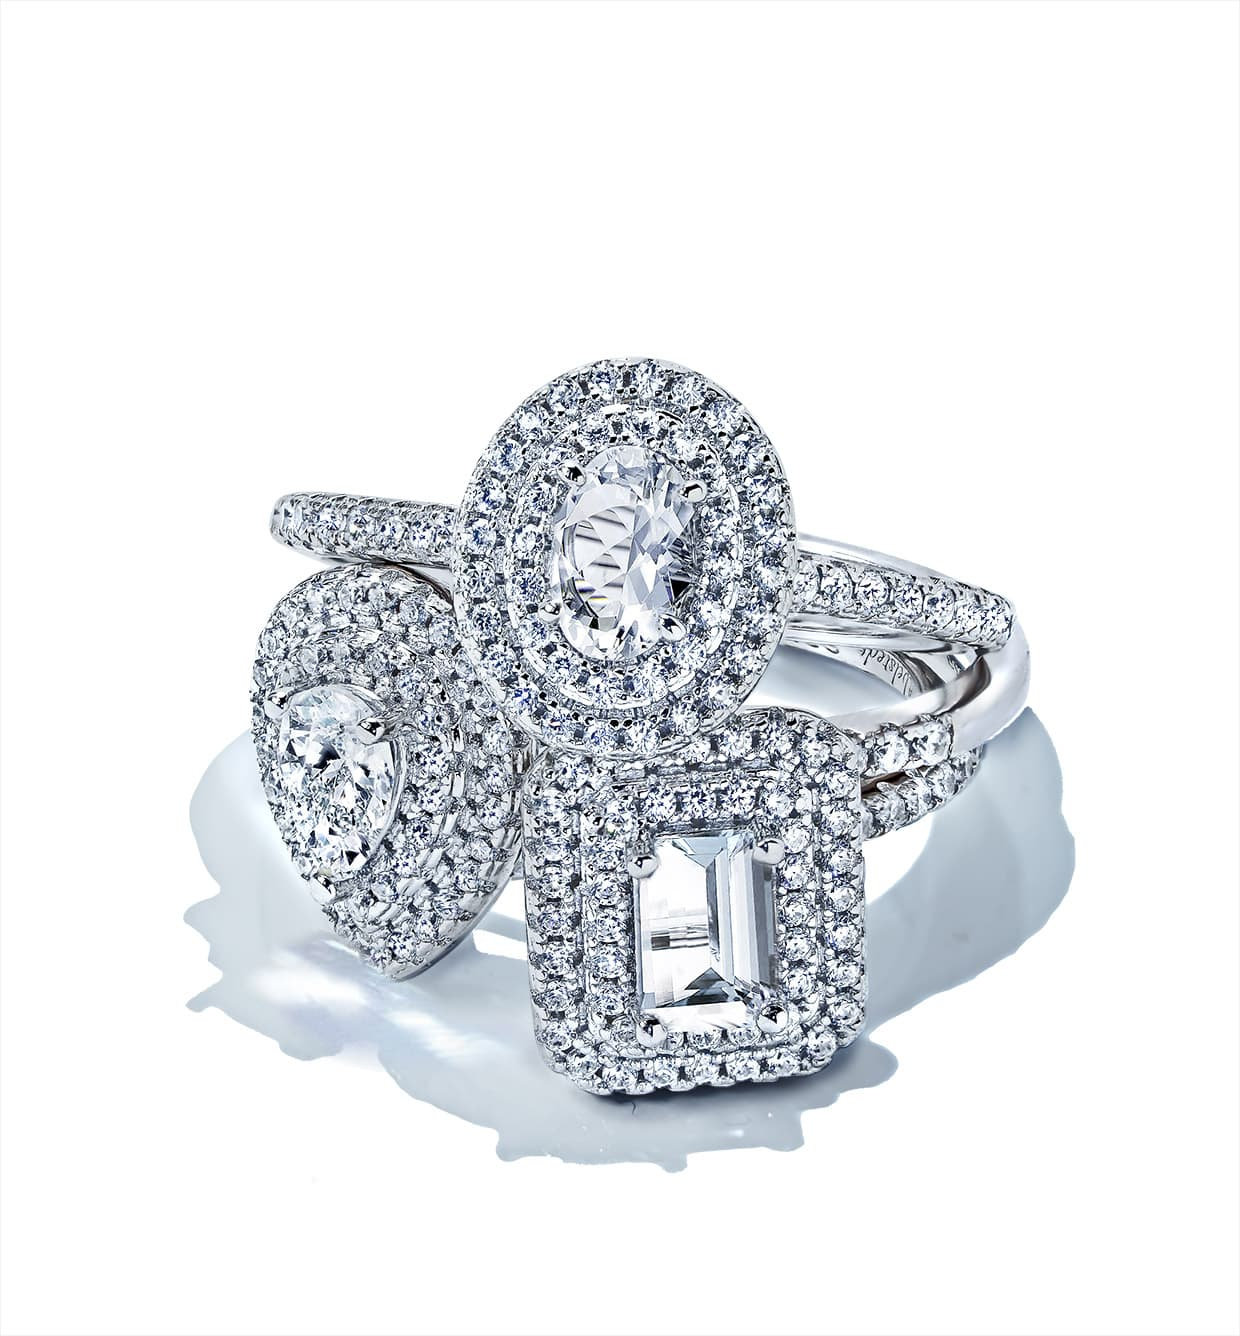 Diamond rings with white stones